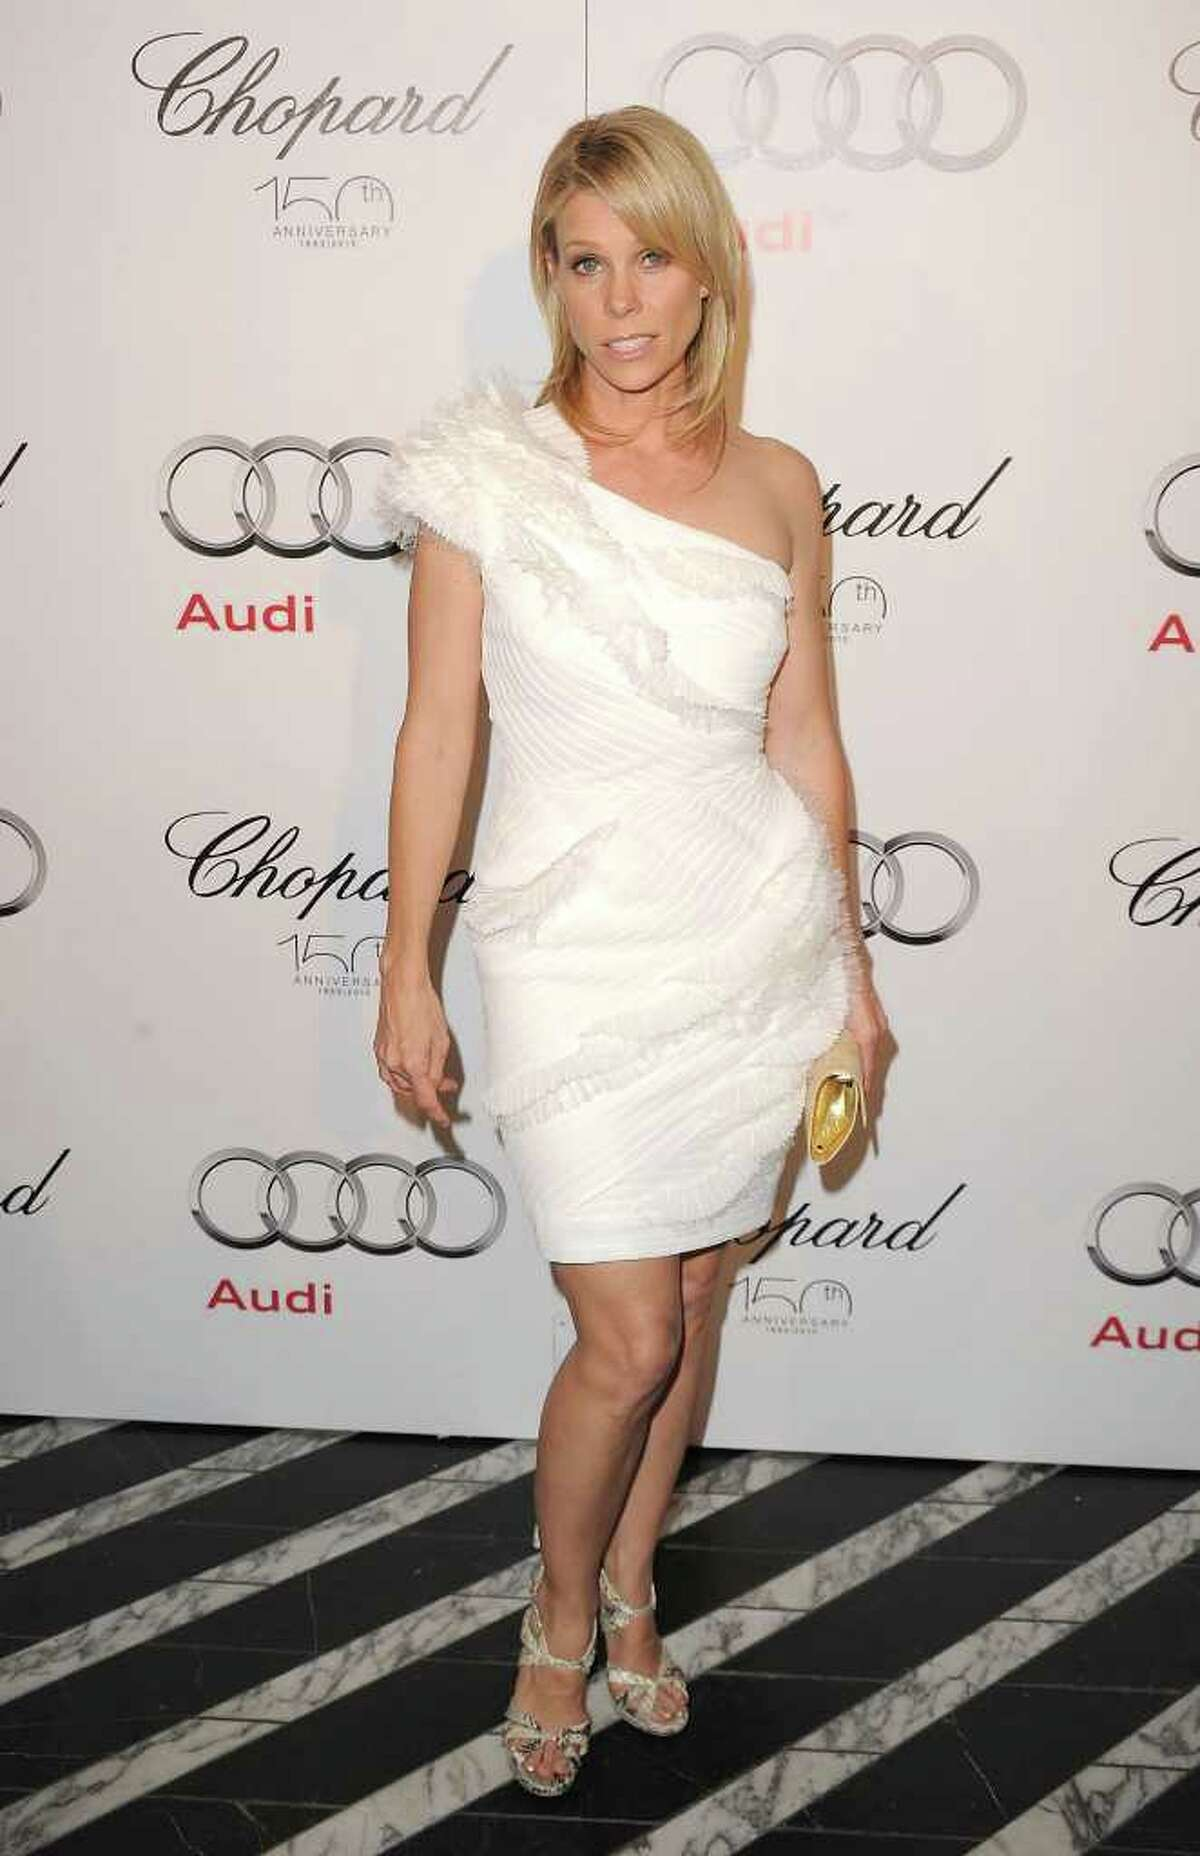 WEST HOLLYWOOD, CA - AUGUST 22: Cheryl Hines arrives at the Audi/Chopard EMMY week red carpet style kick-off party held at Cecconi's Restaurant on August 22, 2010 in Los Angeles, California. (Photo by Jason Merritt/Getty Images) *** Local Caption *** Cheryl Hines